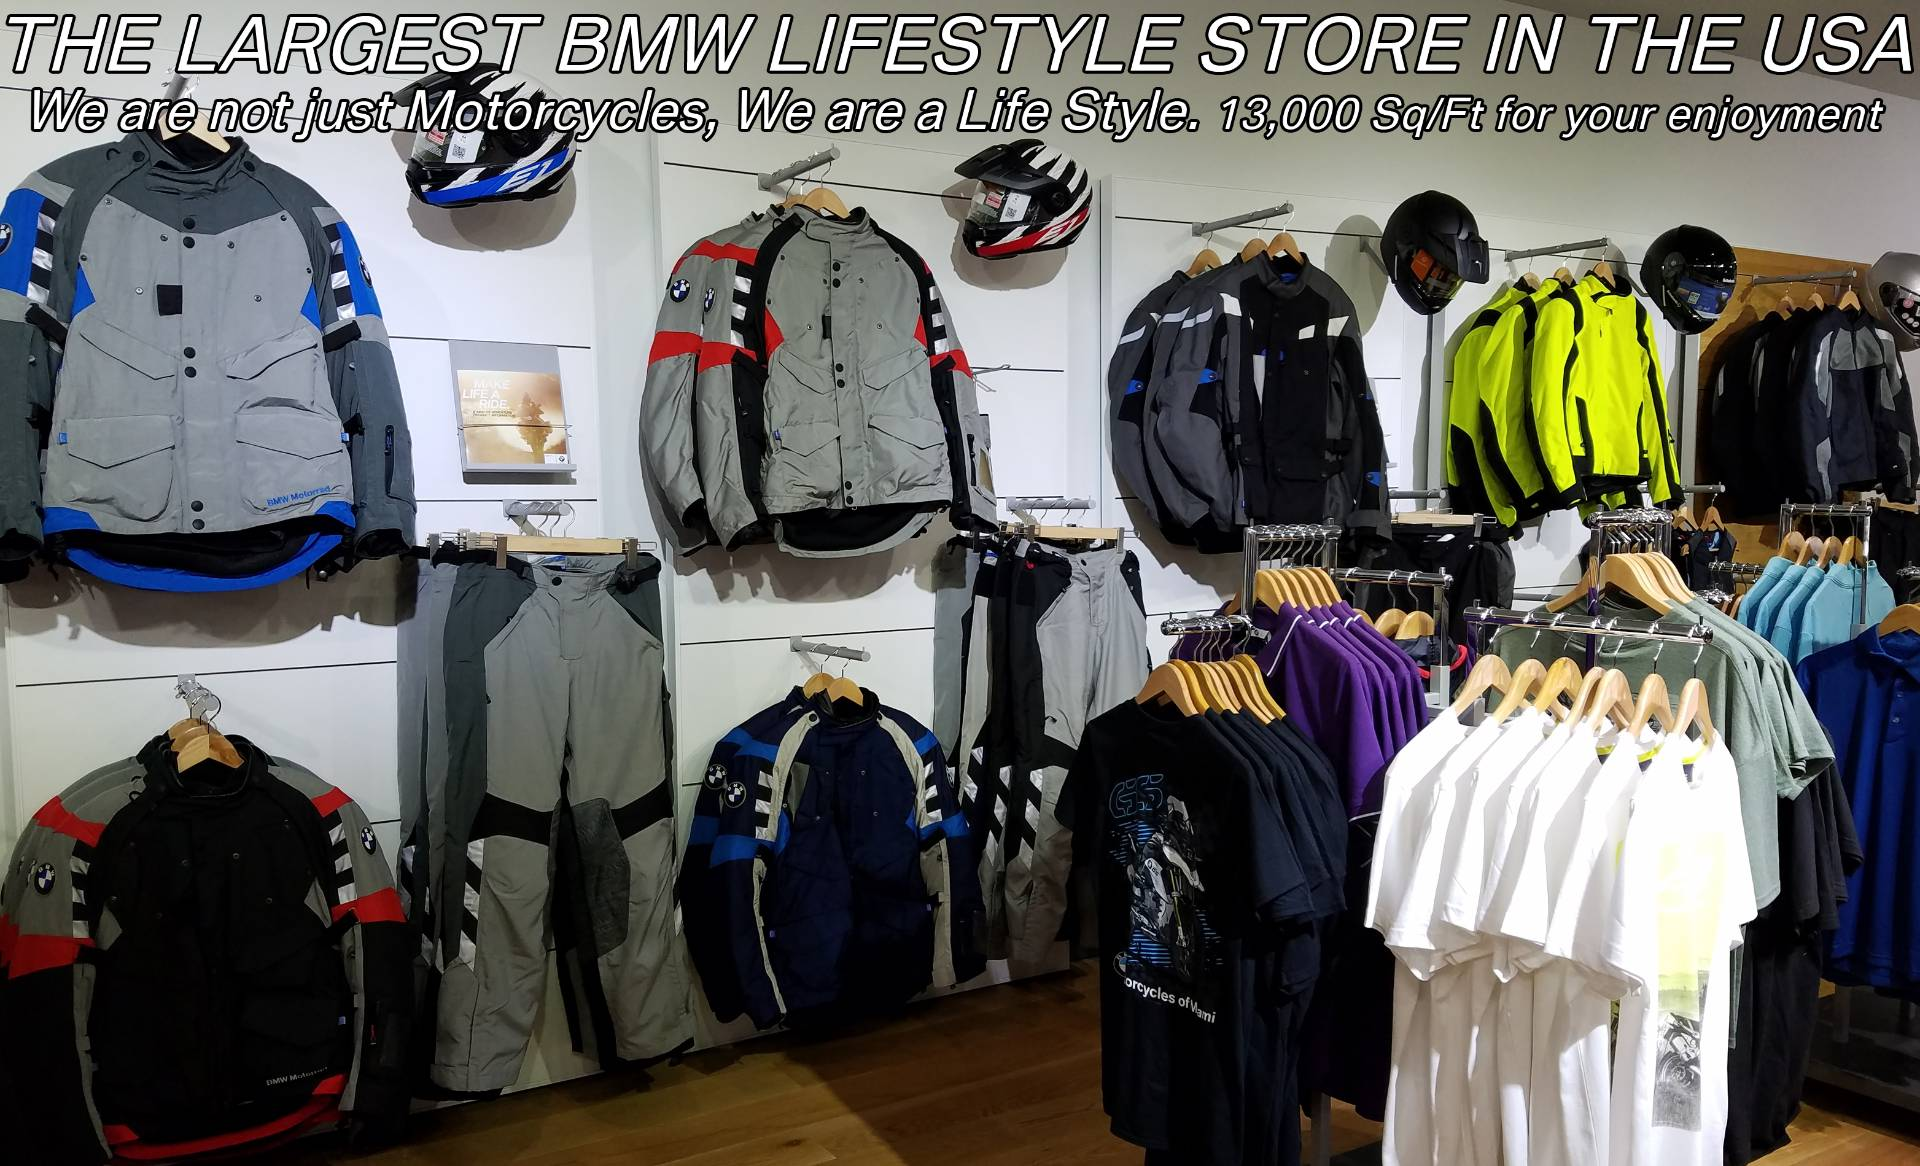 BMW Motorcycles of Miami, Motorcycles of Miami, Motorcycles Miami, New Motorcycles, Used Motorcycles, pre-owned. #BMWMotorcyclesOfMiami #MotorcyclesOfMiami. - Photo 55